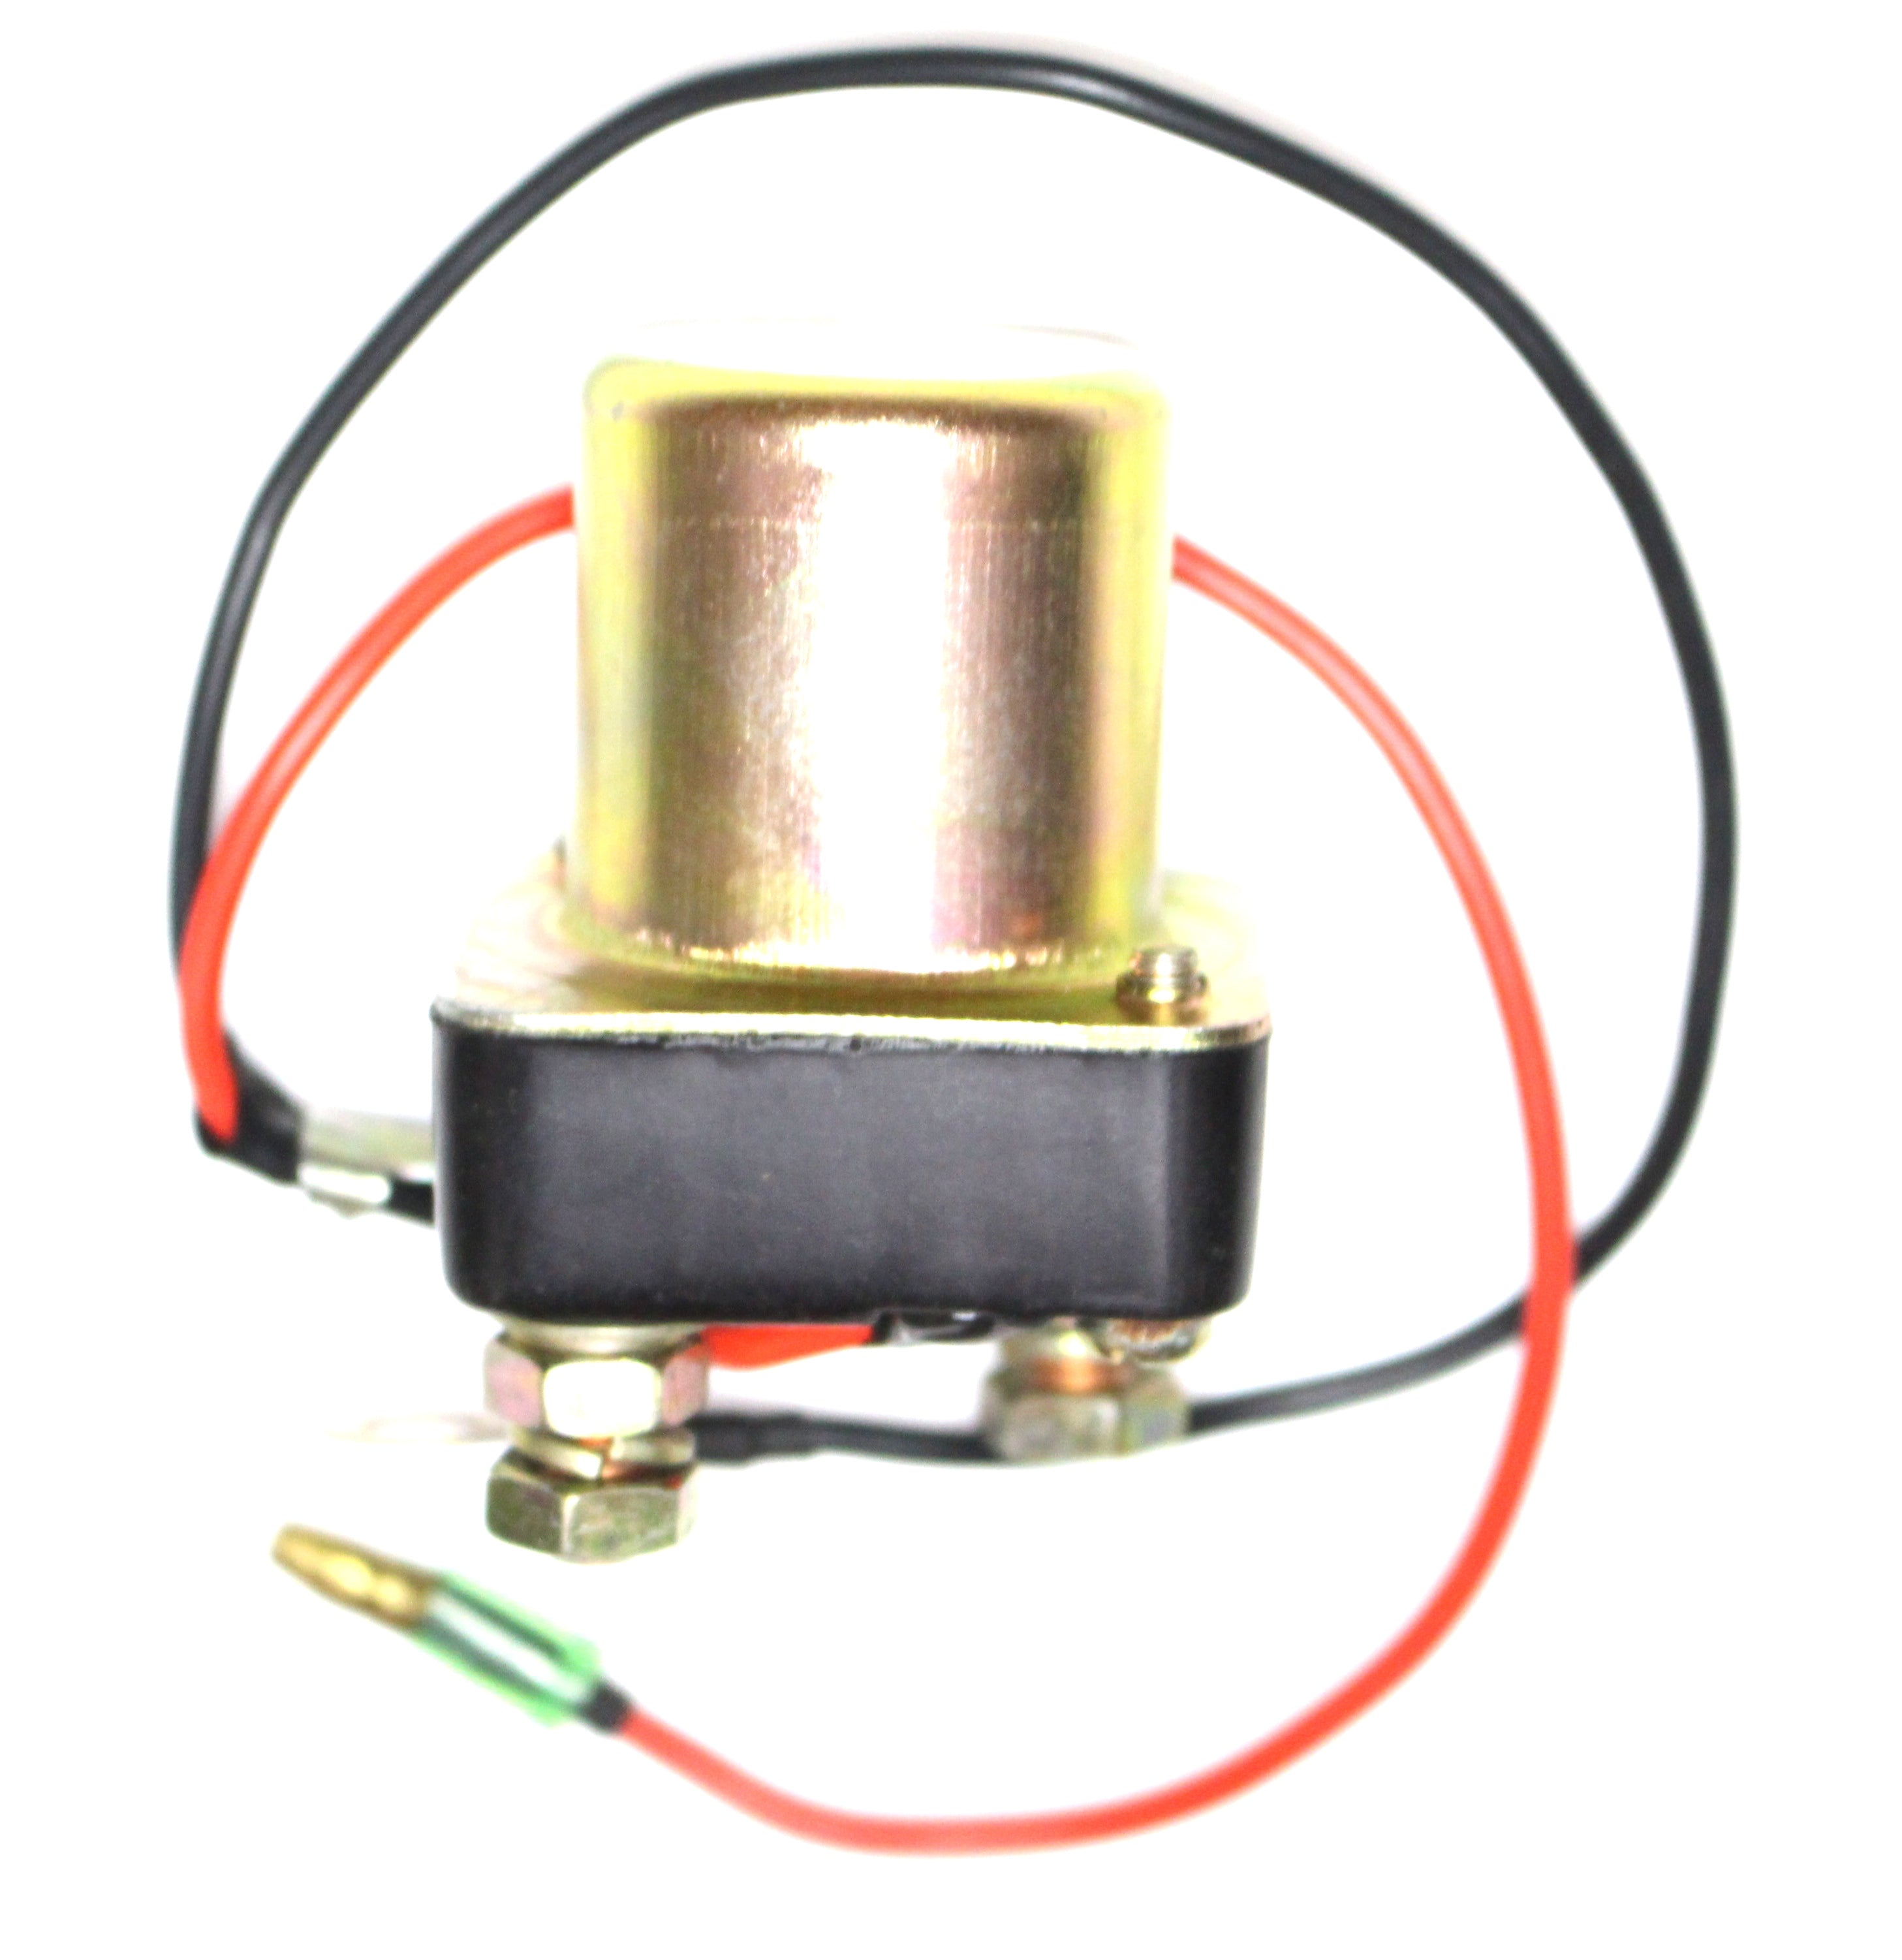 Yamaha Outboard Trim Relay Solenoid Boat 115 135 150 175 200 Hp 6e5